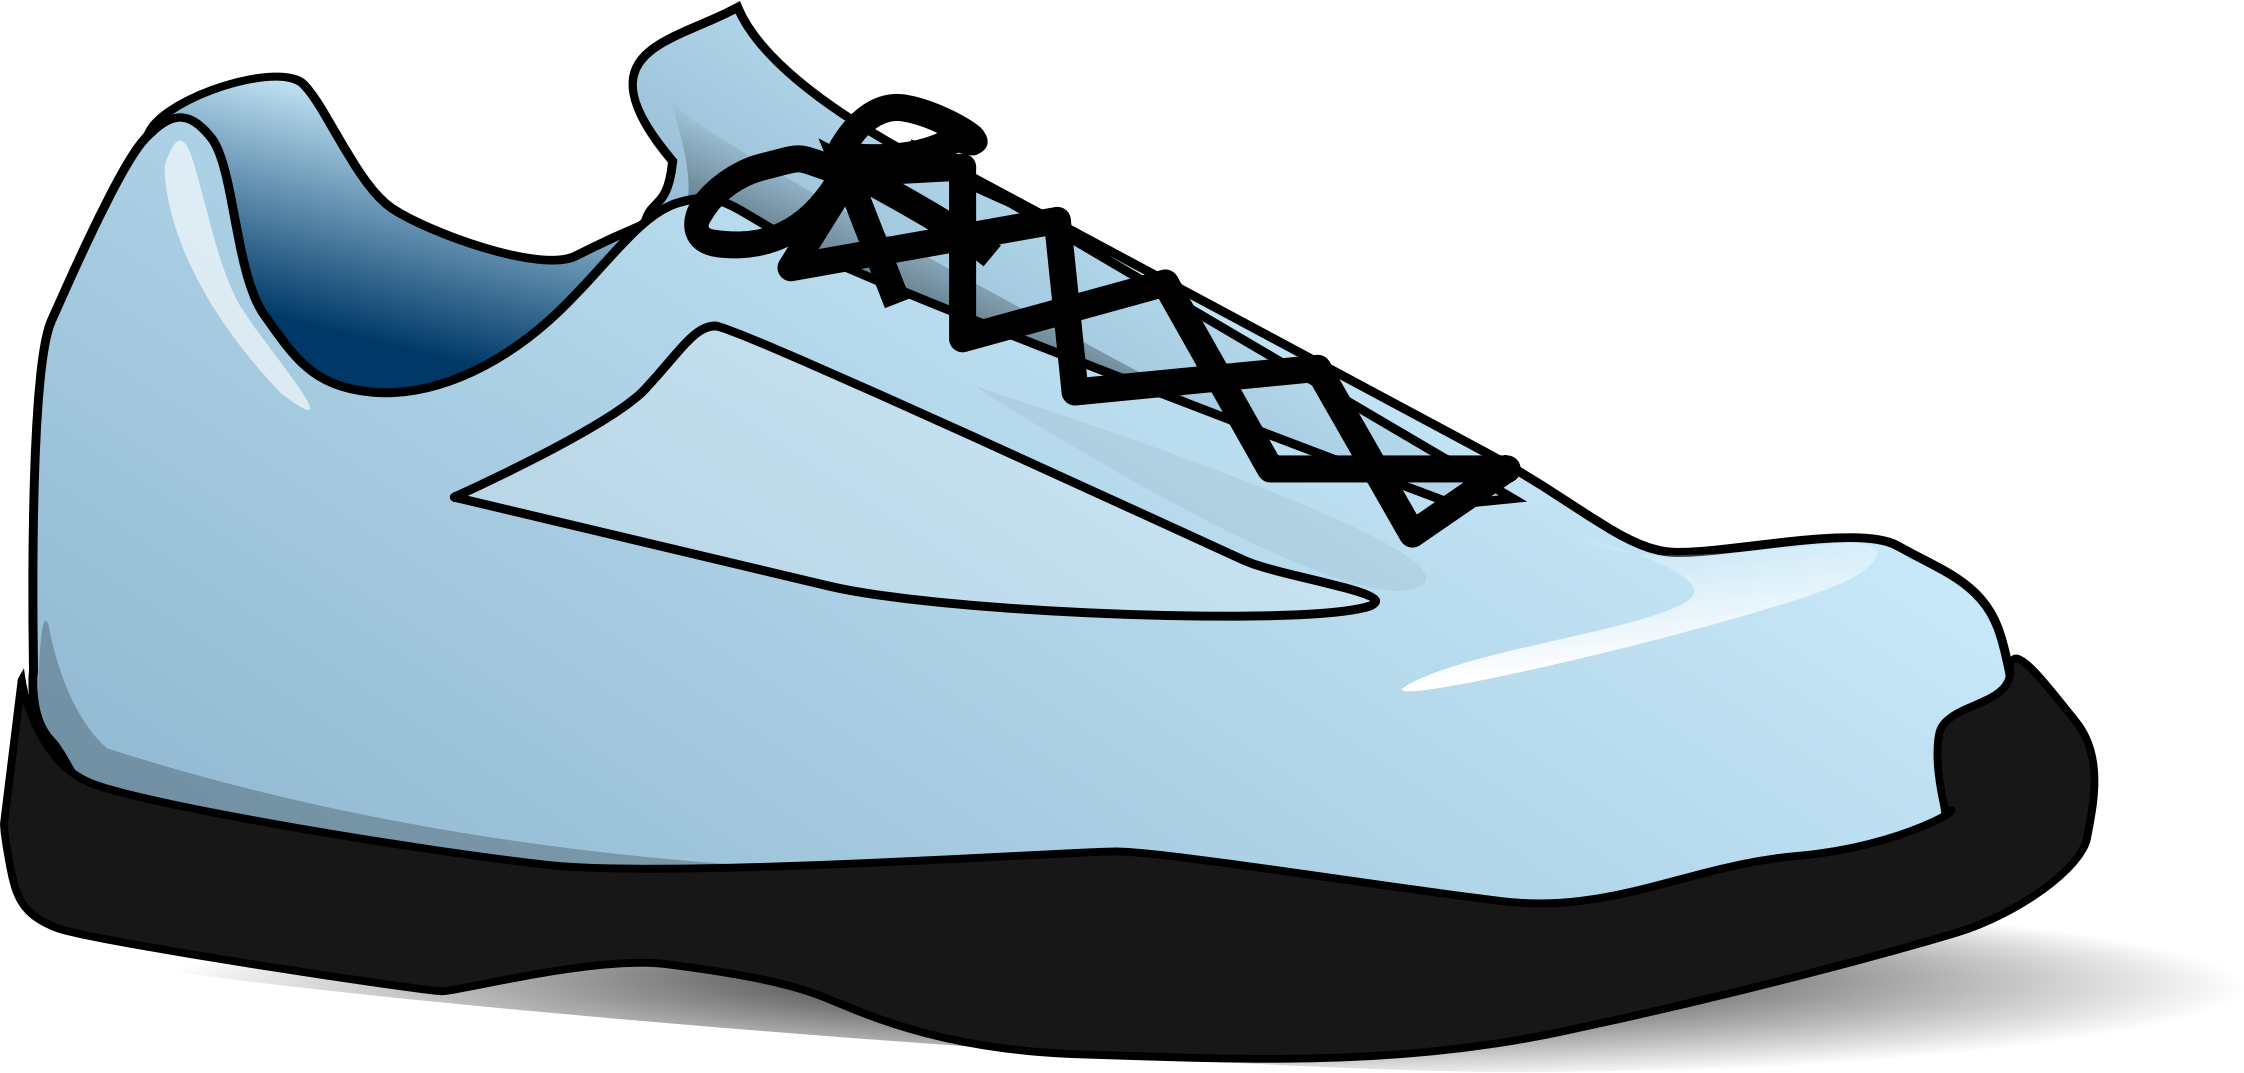 nike shoes clipart at getdrawings com free for personal use nike rh getdrawings com cartoon tennis shoes clip art how to draw cartoon tennis shoes